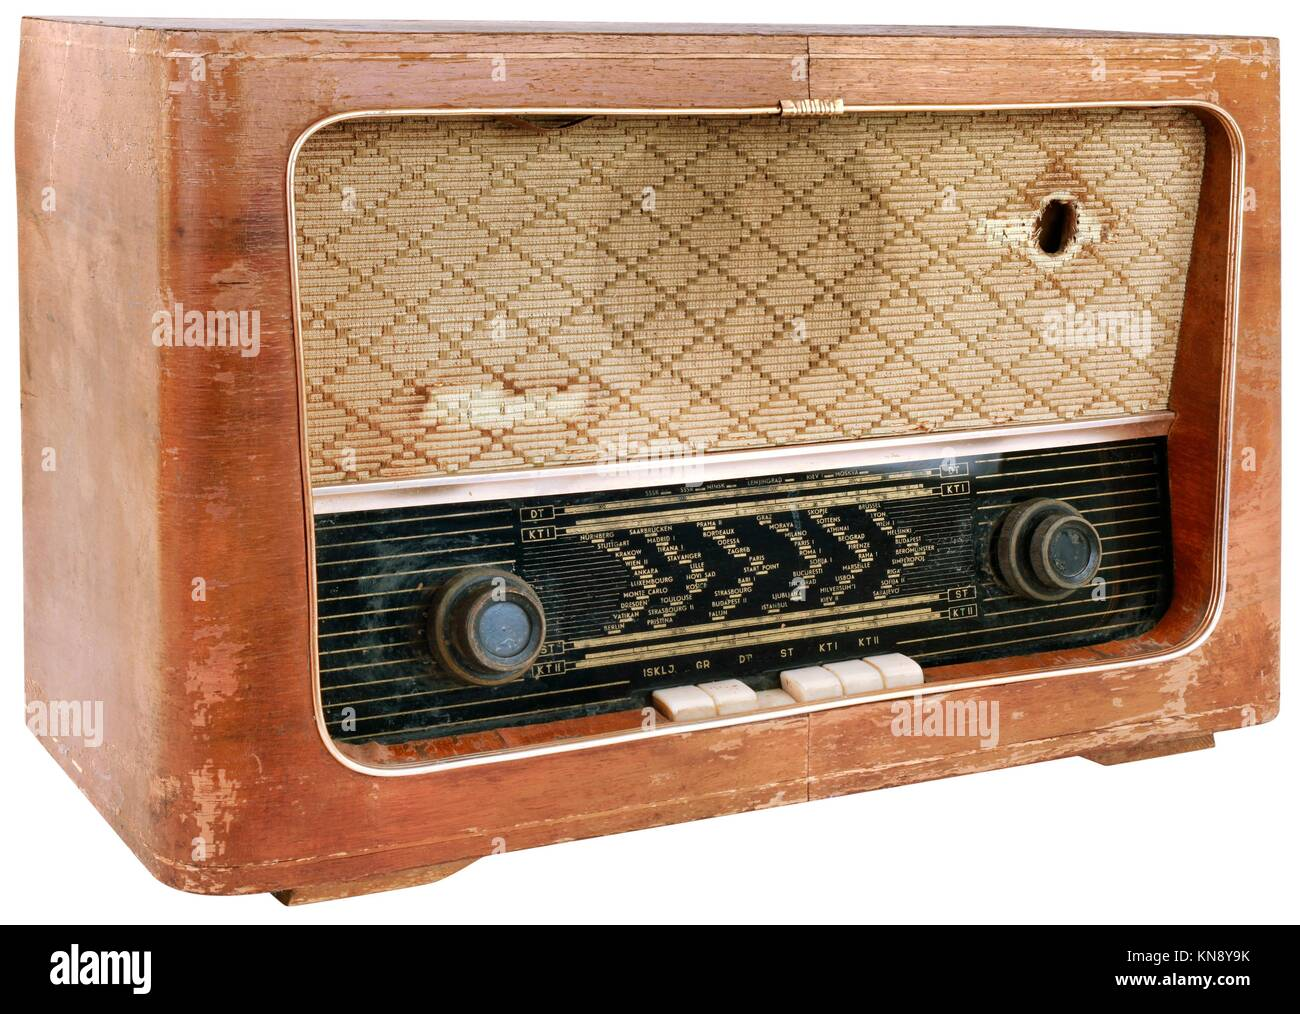 Old Obsolete Wooden Radio Cutout. - Stock Image